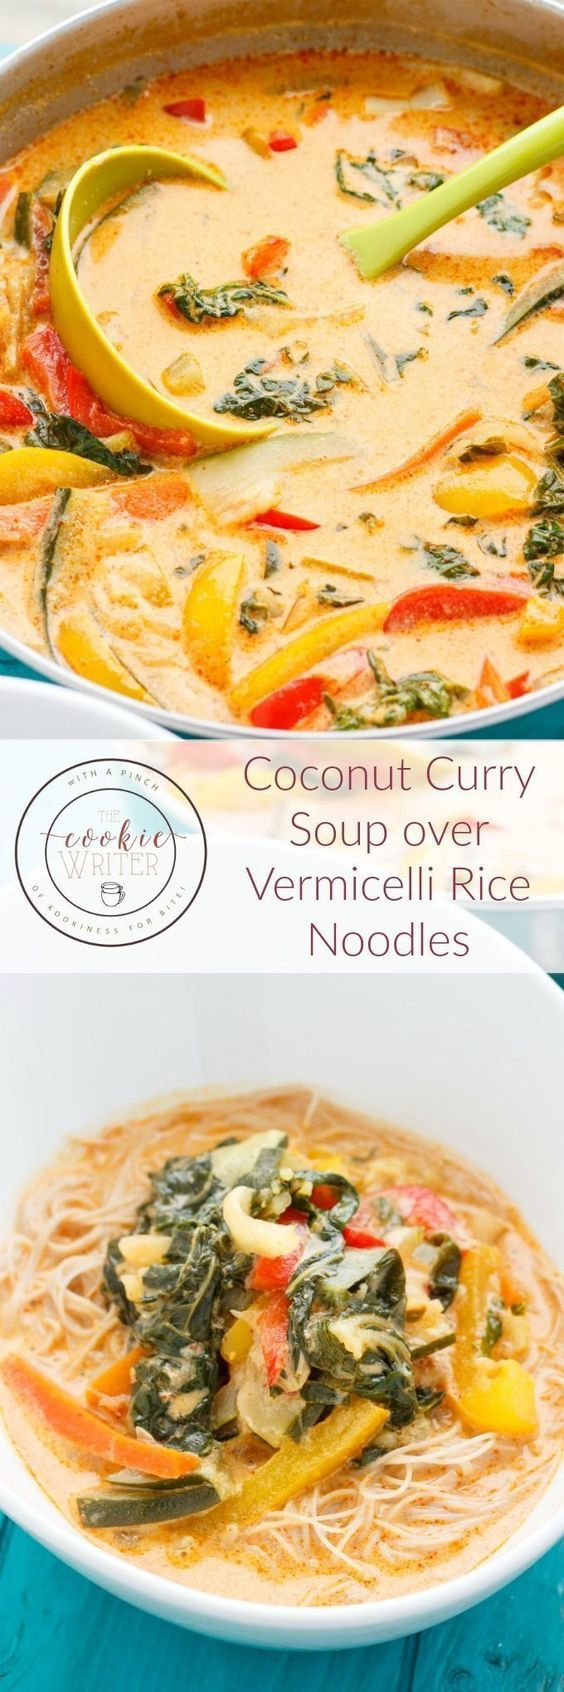 Coconut Curry Soup over Vermicelli Rice Noodles   http://thecookiewriter.com   @thecookiewriter   #soup